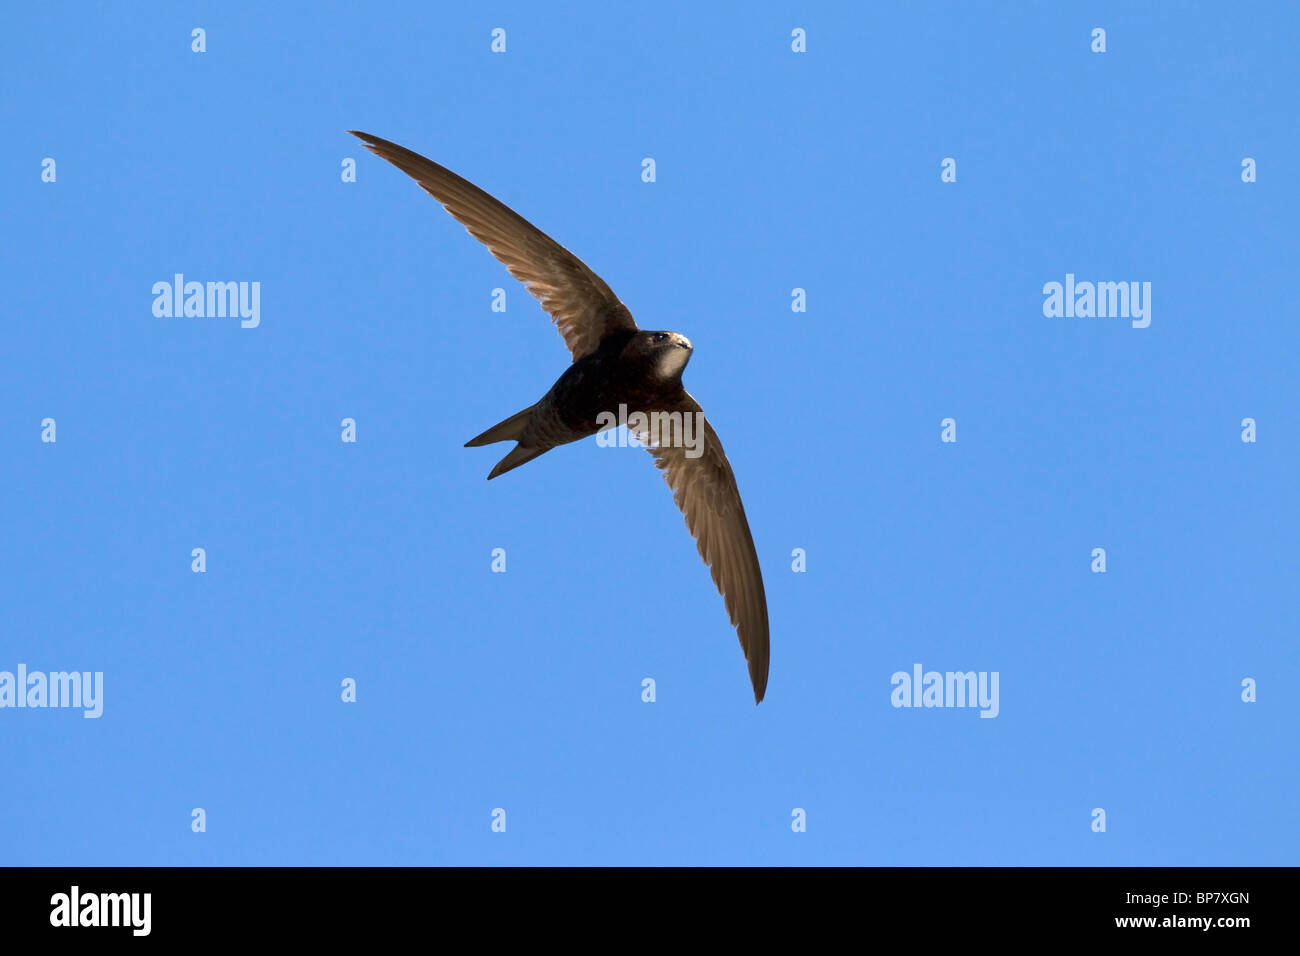 Common swift (Apus apus) in flight against blue sky - Stock Image